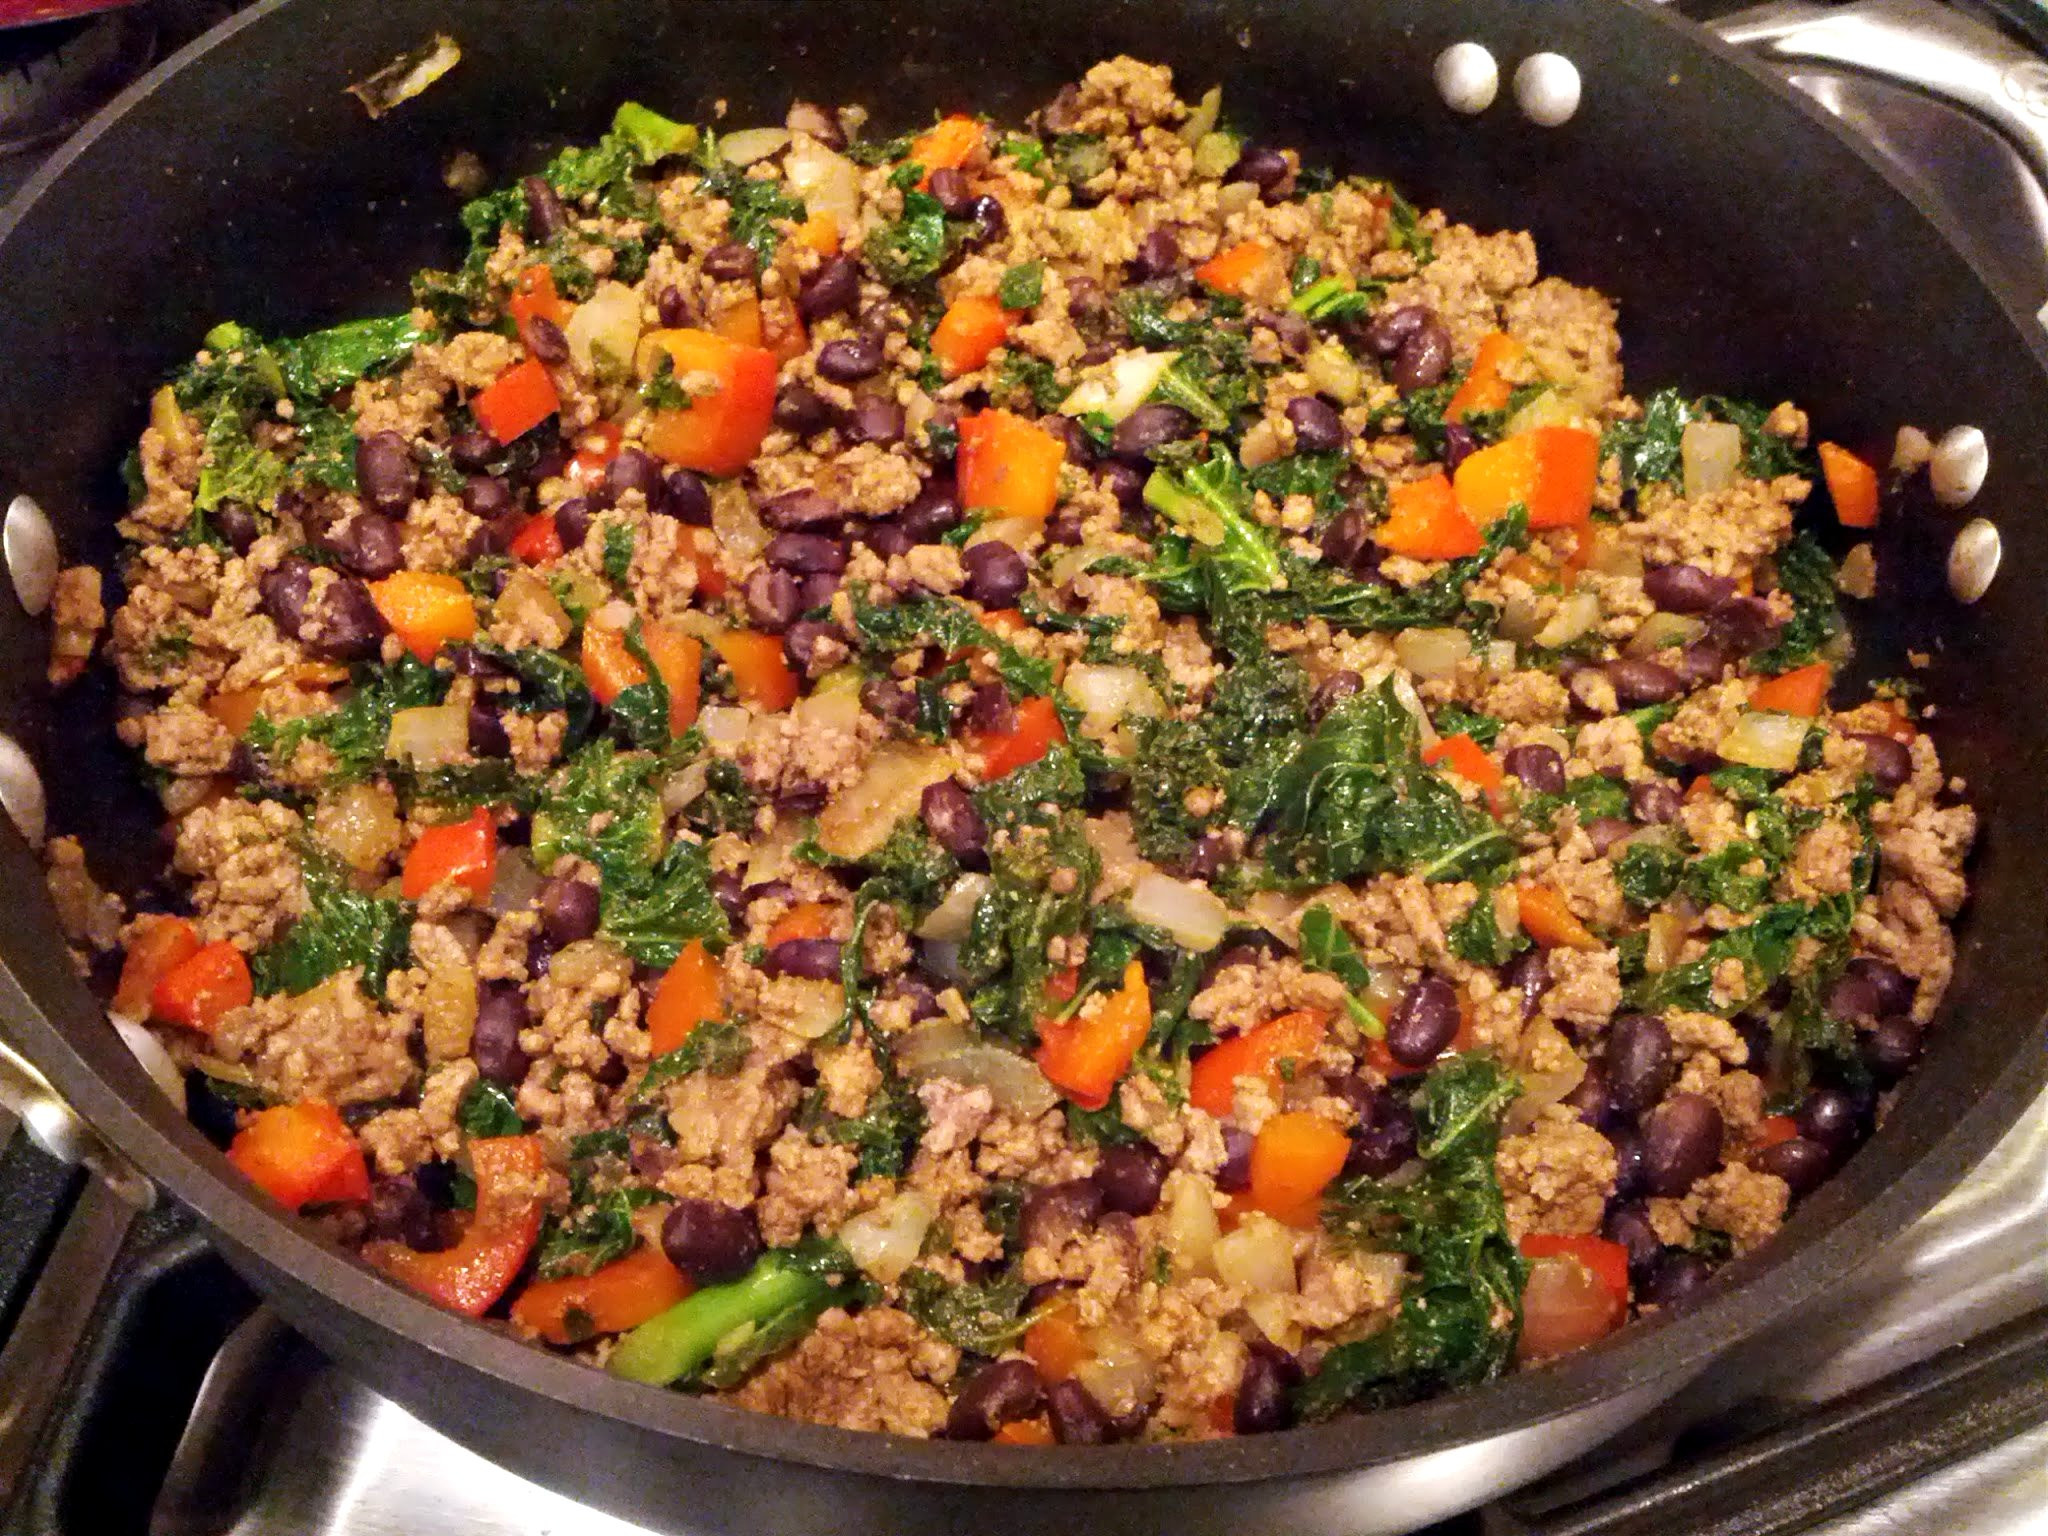 Recipe For Ground Turkey  Kale and Ground Beef Turkey Taco Filling